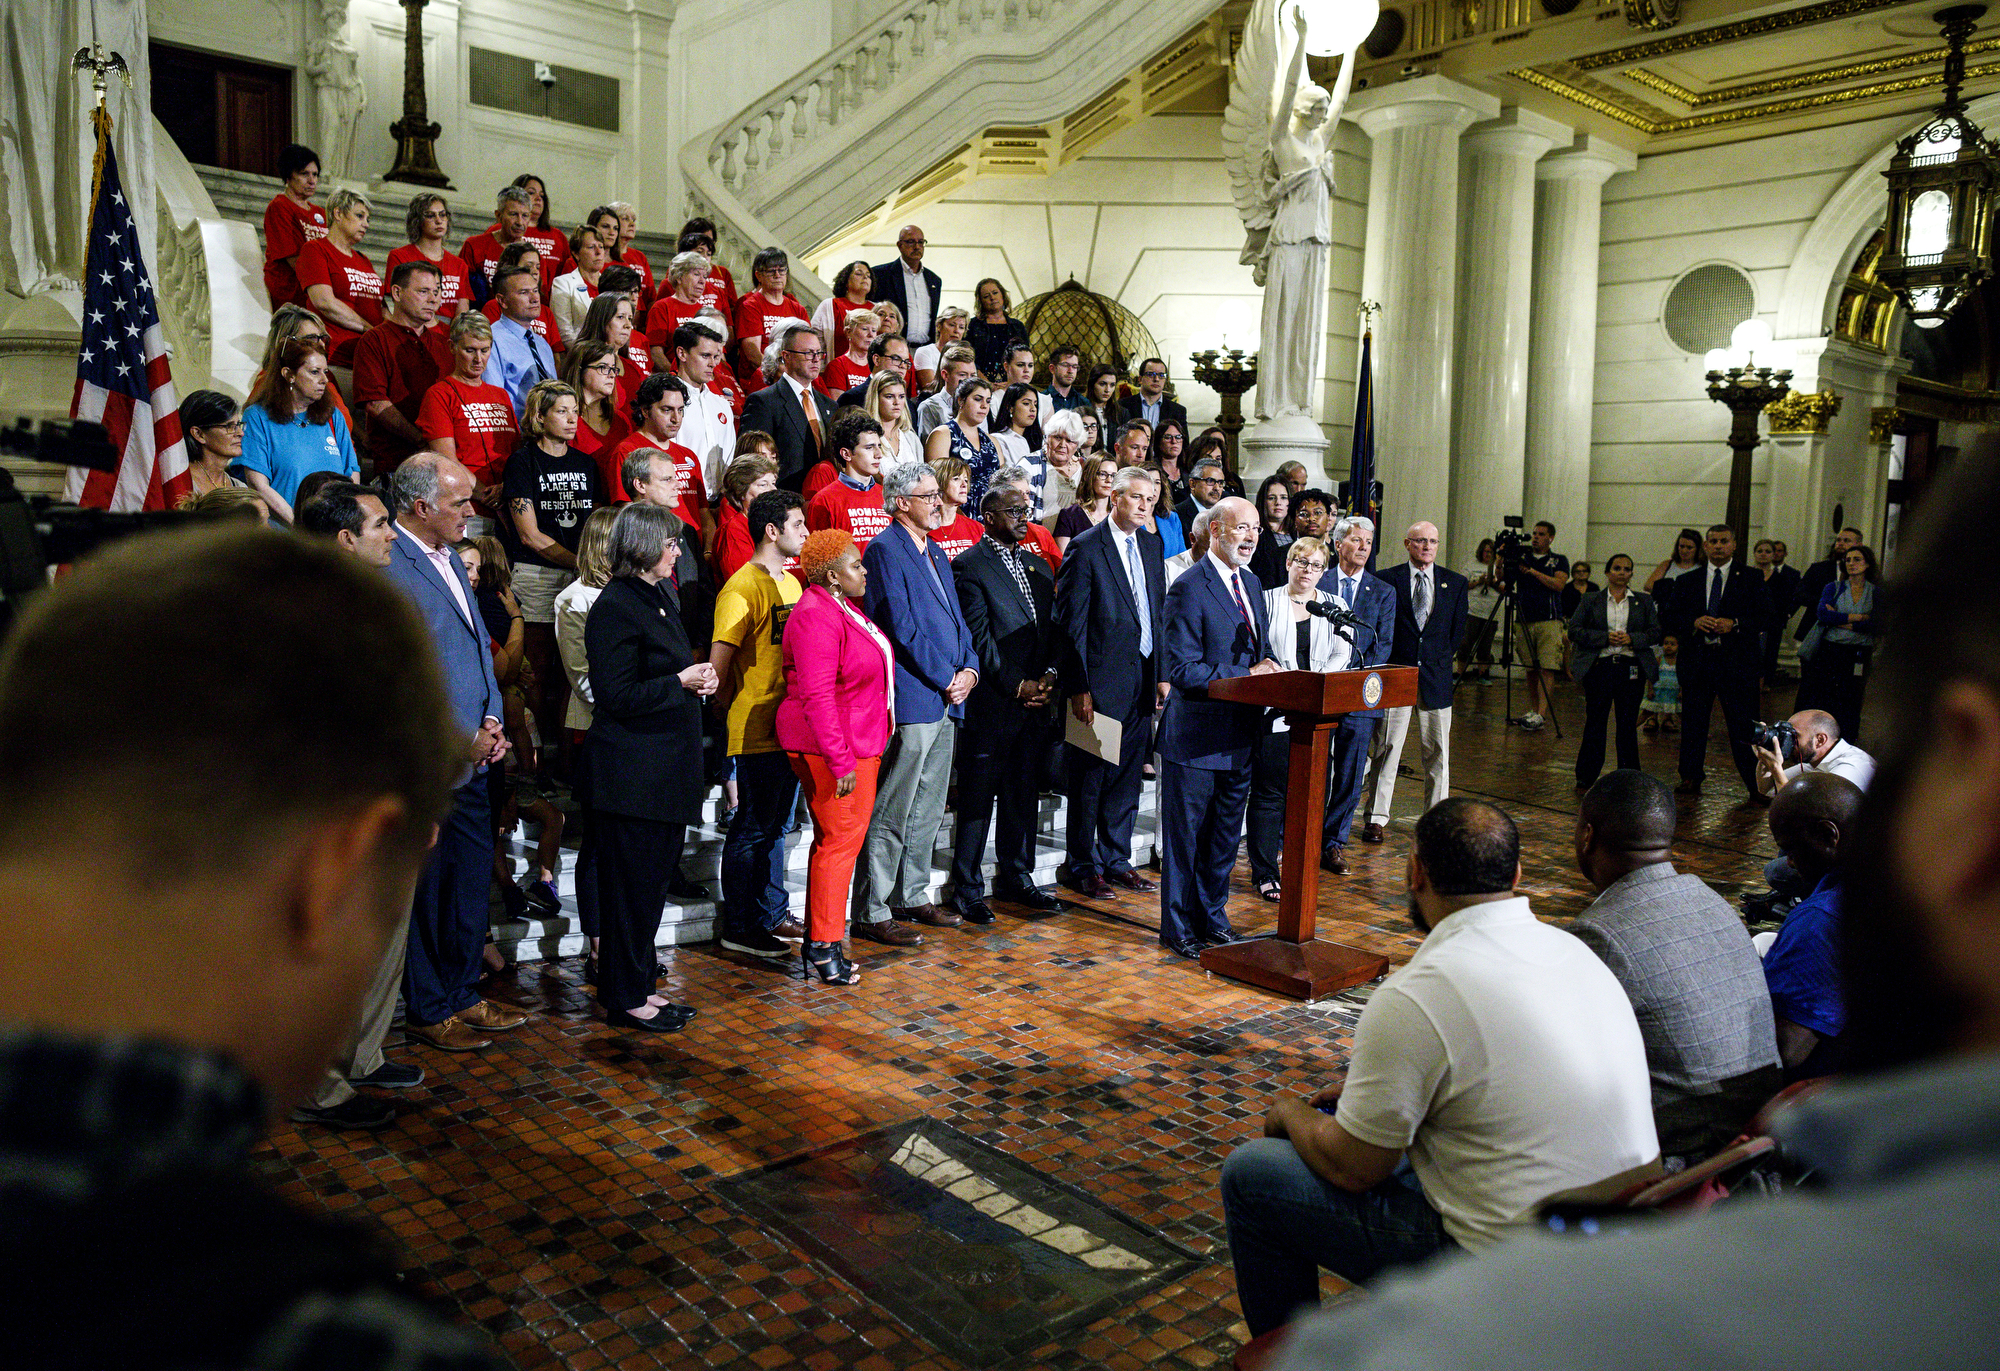 Gov. Wolf, Sen. Casey host remembrance event for victims of gun violence